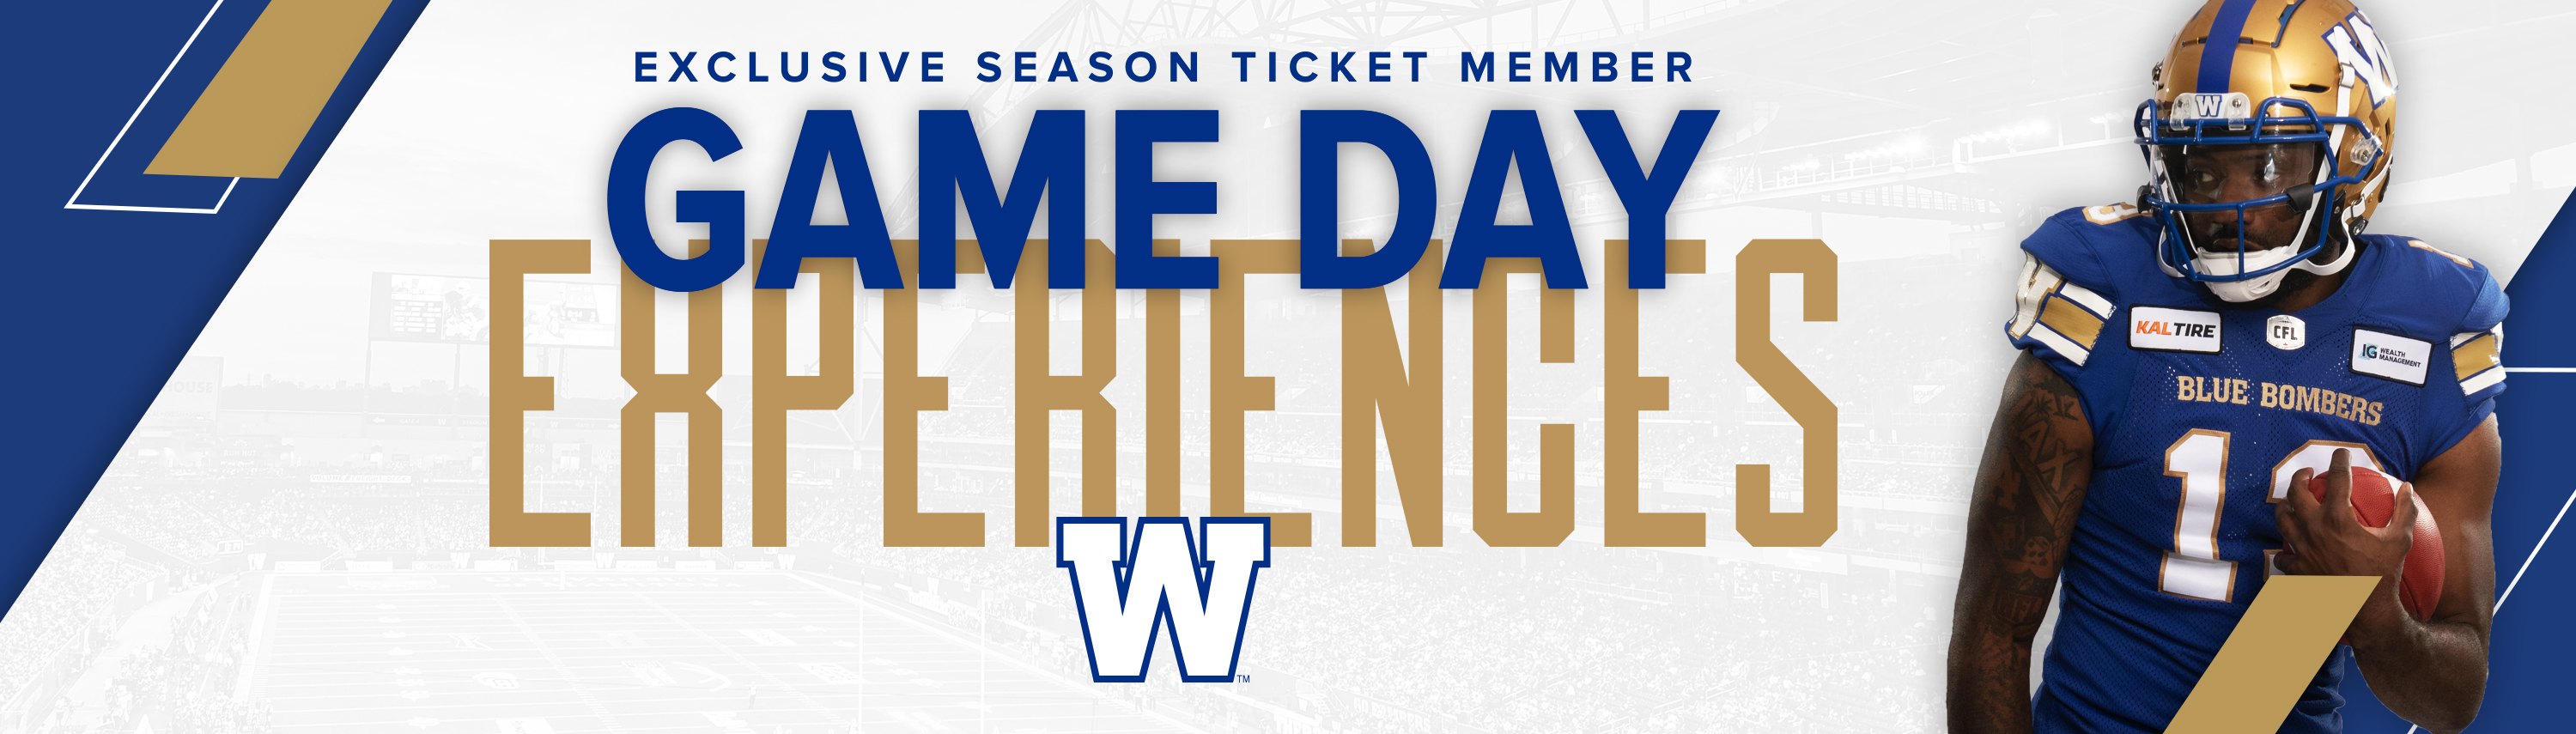 Winnipeg Blue Bombers Game Day Experiences